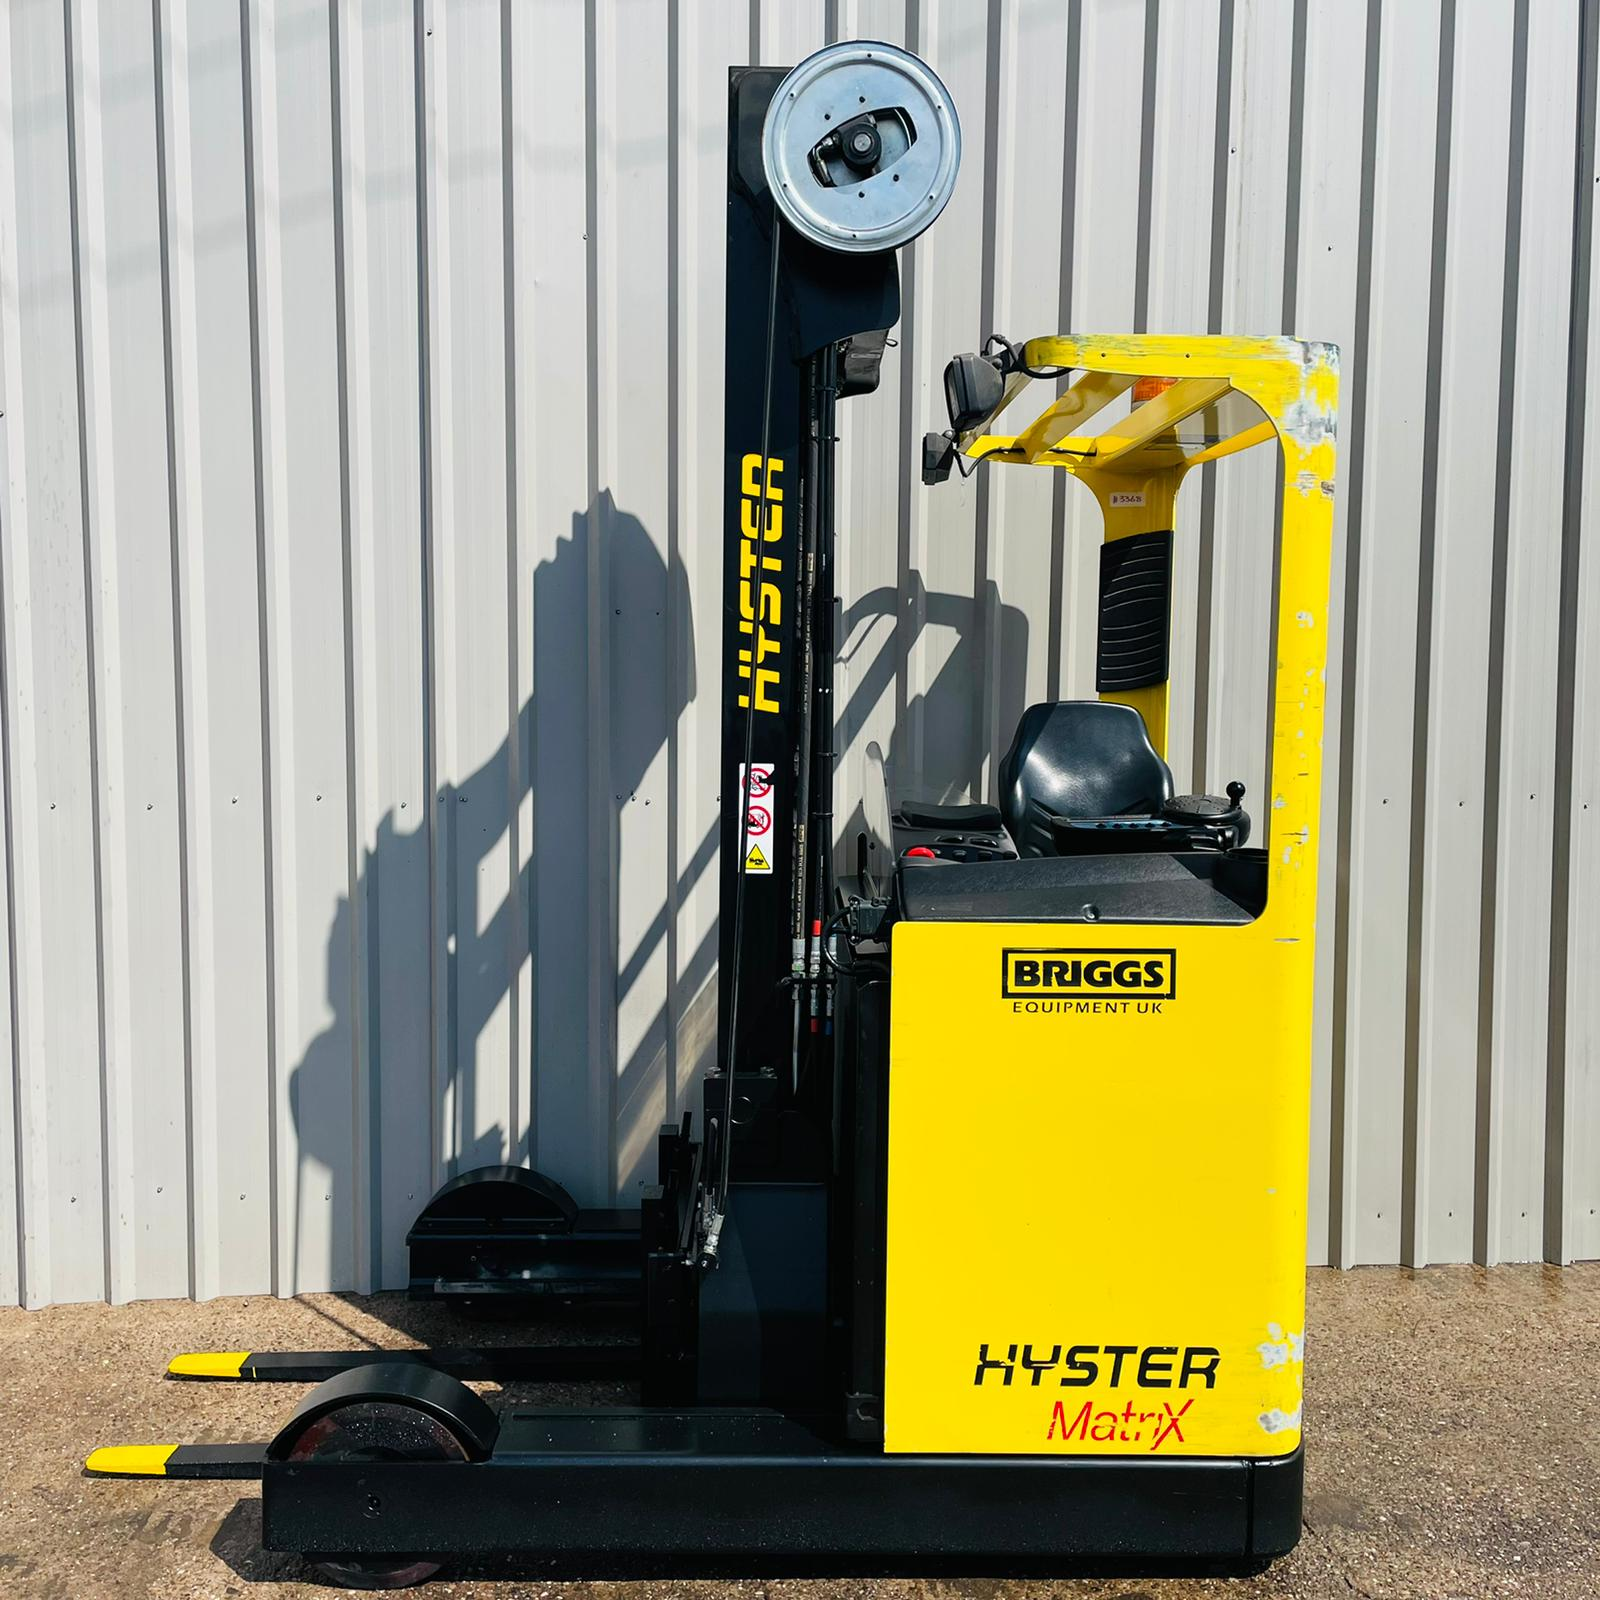 HYSTER R1.6 #3368 WhatsApp Image 2021-07-02 at 10.43.03 AM (2)